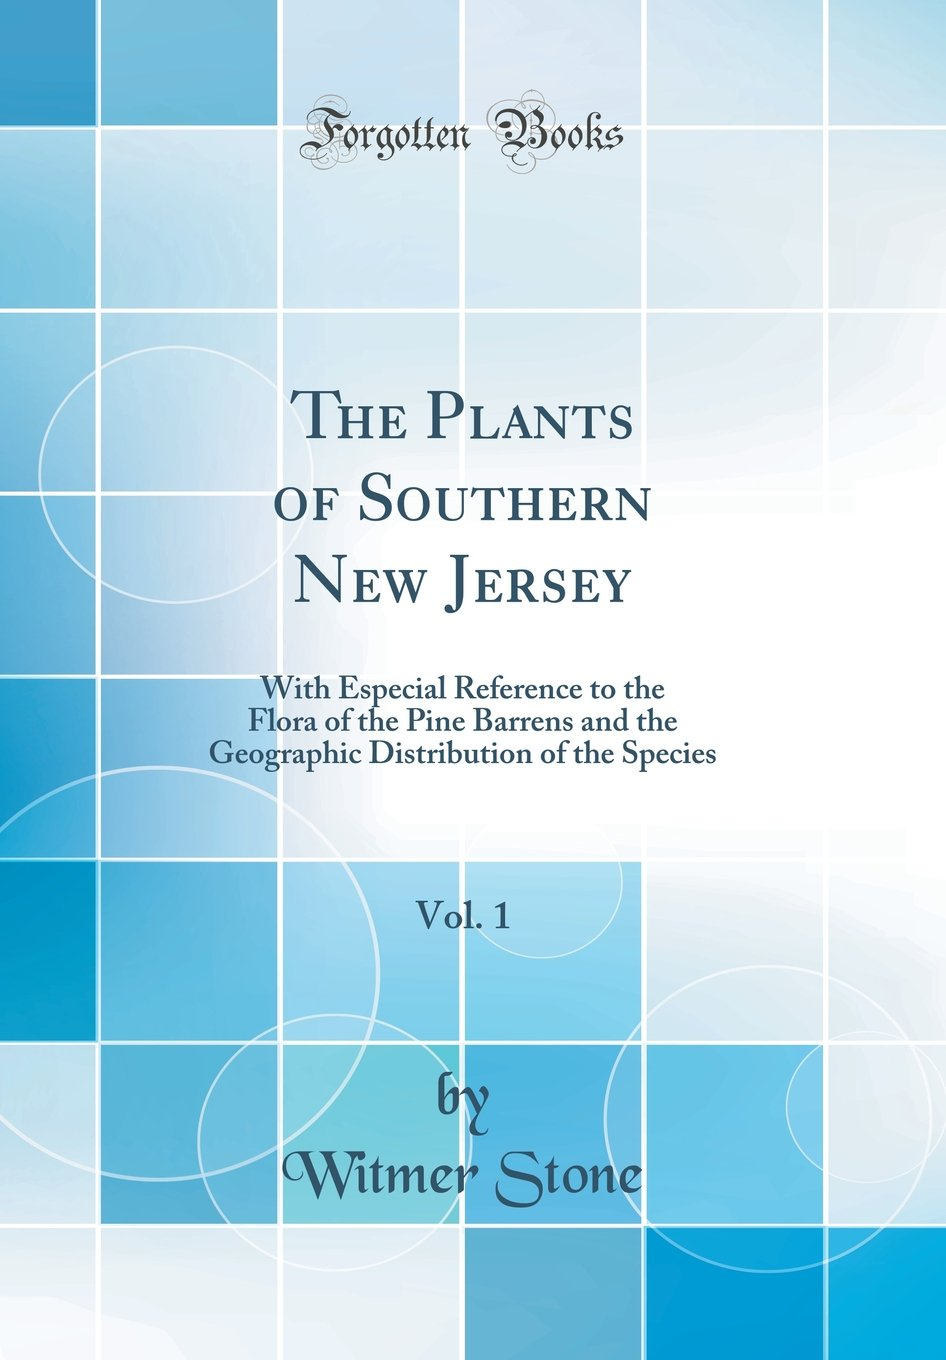 Download The Plants of Southern New Jersey, Vol. 1: With Especial Reference to the Flora of the Pine Barrens and the Geographic Distribution of the Species (Classic Reprint) pdf